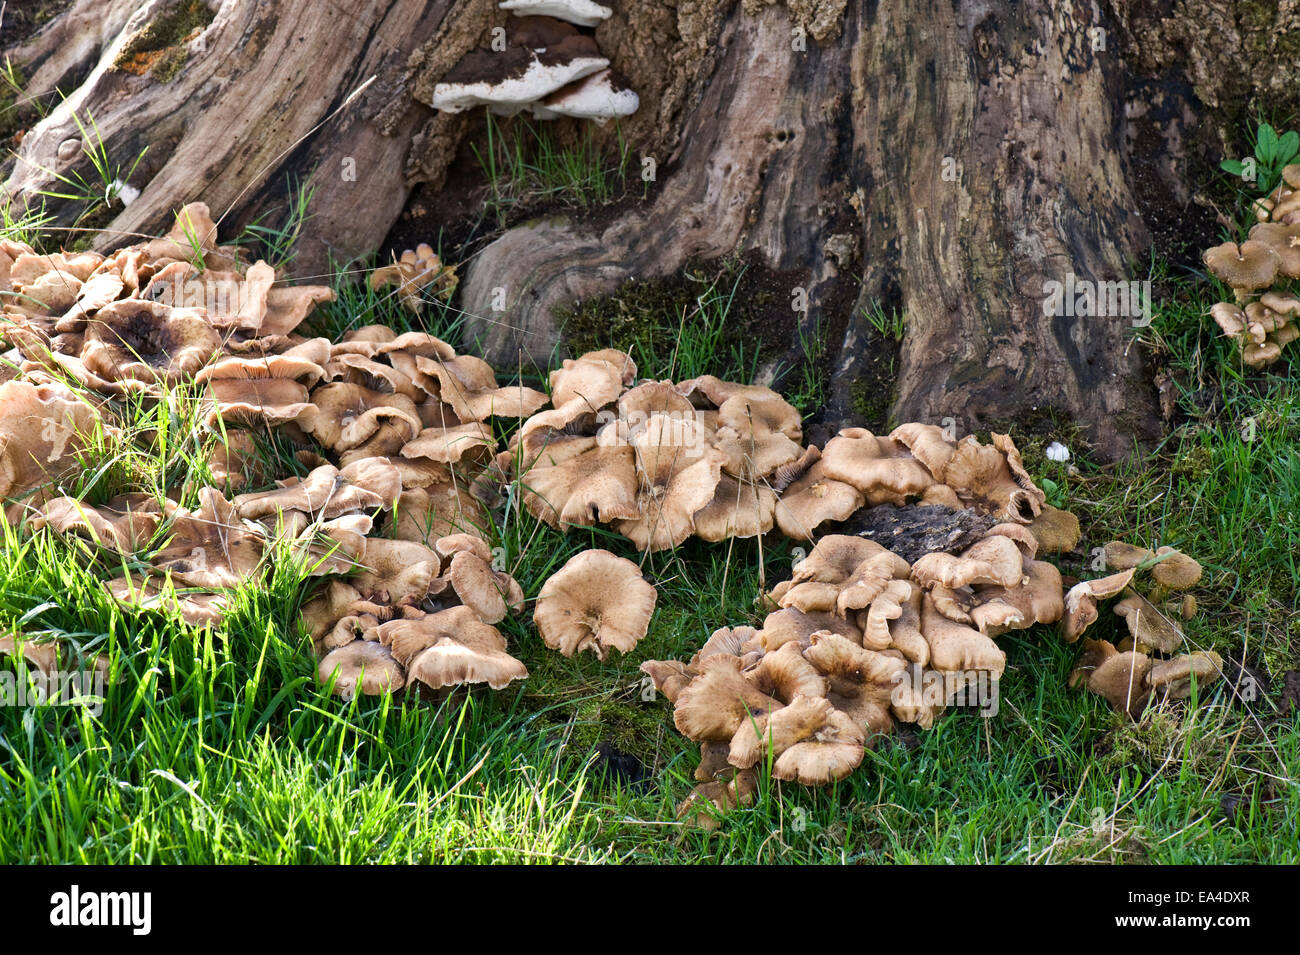 Fruiting bodies of honey fungus, Armillaria mellea, around the base of an old tree stump in autumn - Stock Image